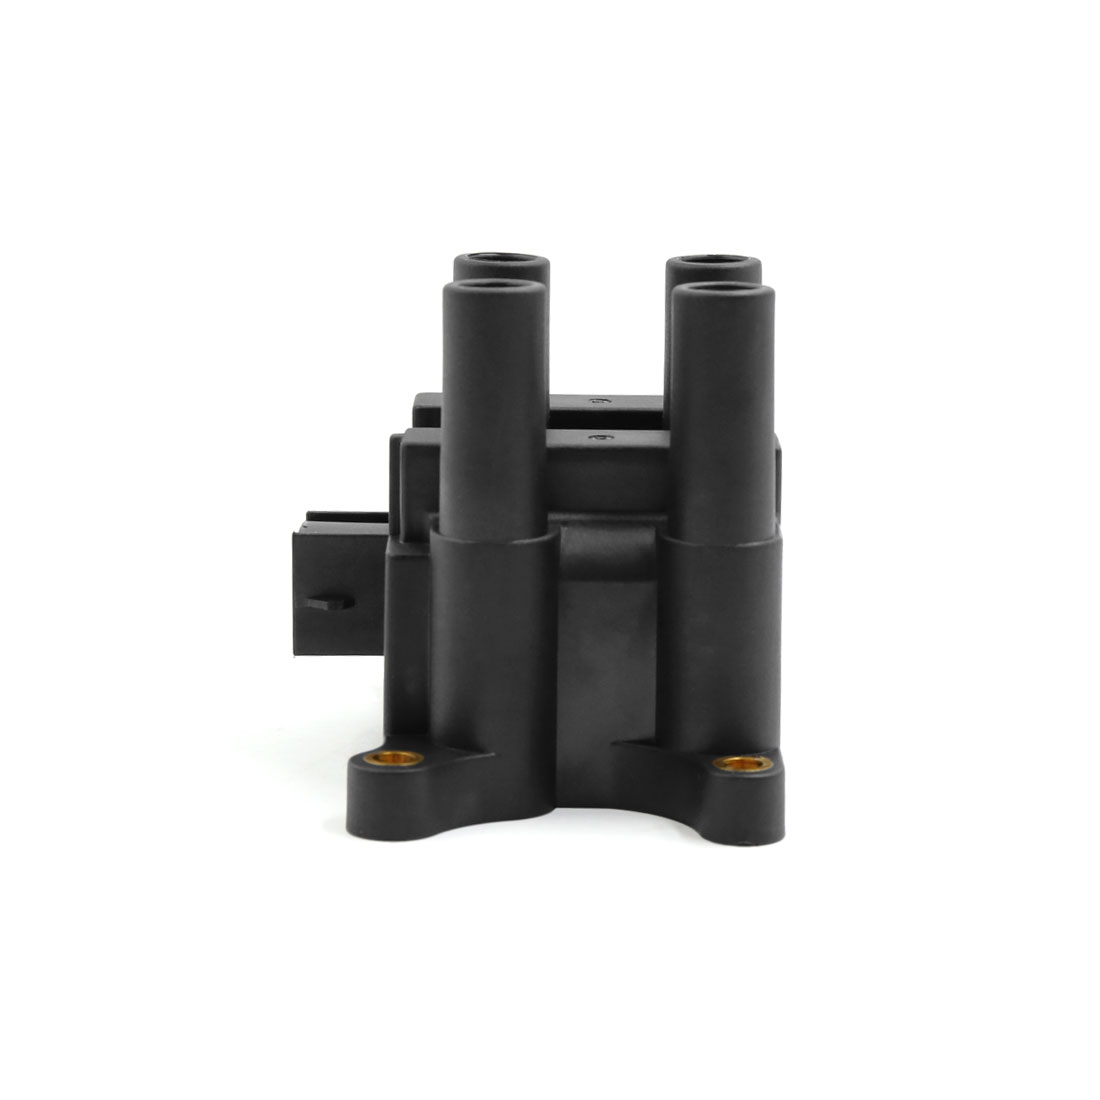 Ignition coil for ford ranger focus mercury mestique mazda b2300 ignition coil for ford ranger focus mercury mestique mazda b2300 fd497 dg536 walmart fandeluxe Choice Image